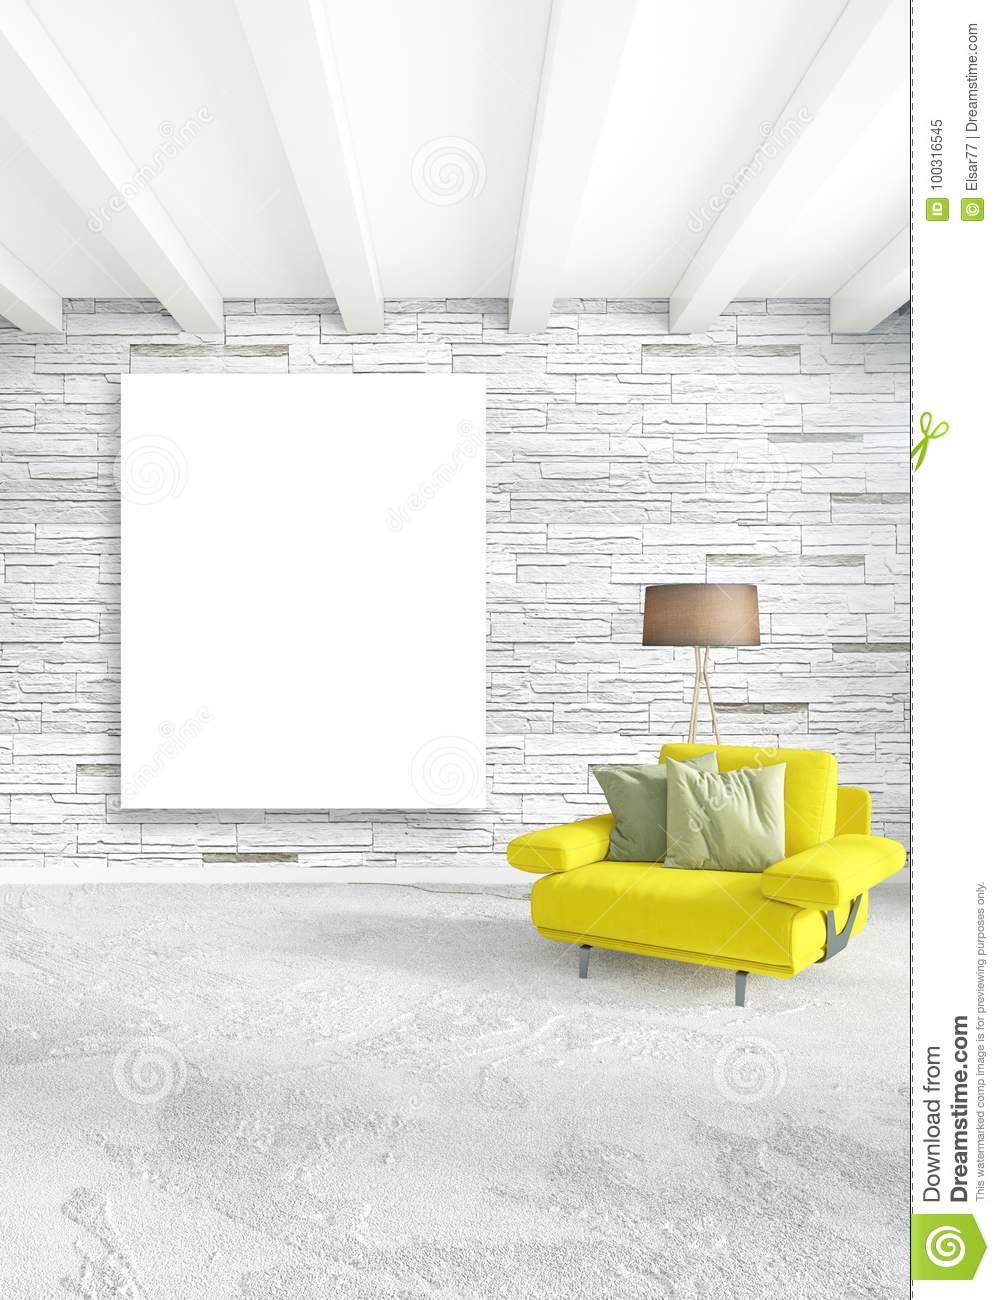 Vertical Minimal Style Interior Loft Design With Wood Wall And Grey Sofa.  3D Rendering.